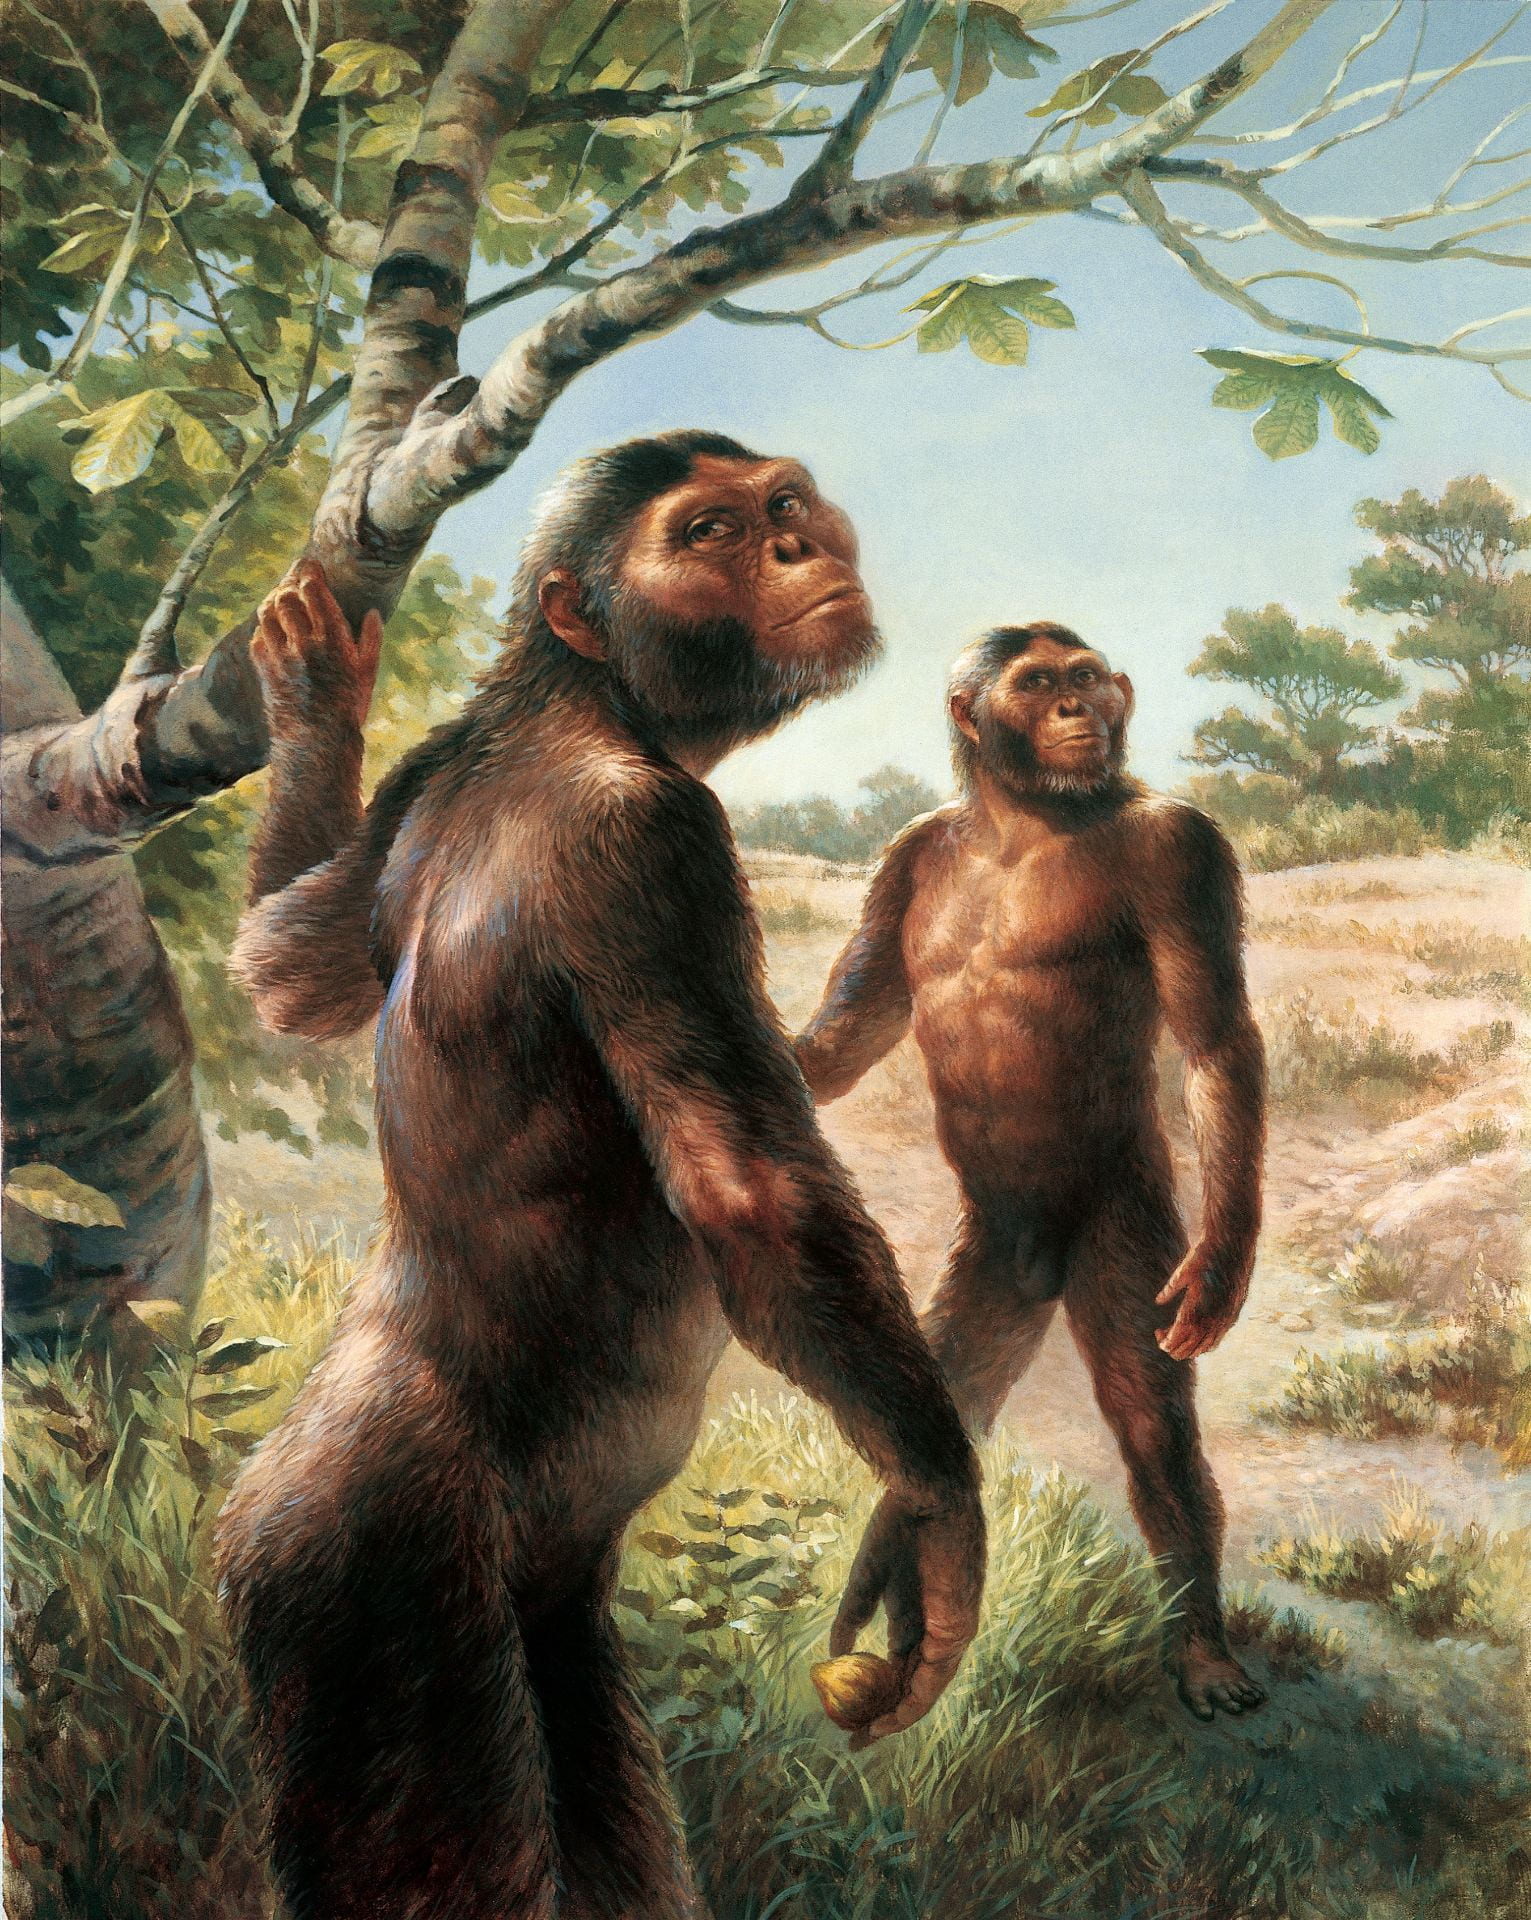 [An artist's rendering of two Australopithecus afarensis. They are both standing upright and are partially covered in black hair all over their bodies. One is grabbing a low tree branch.]